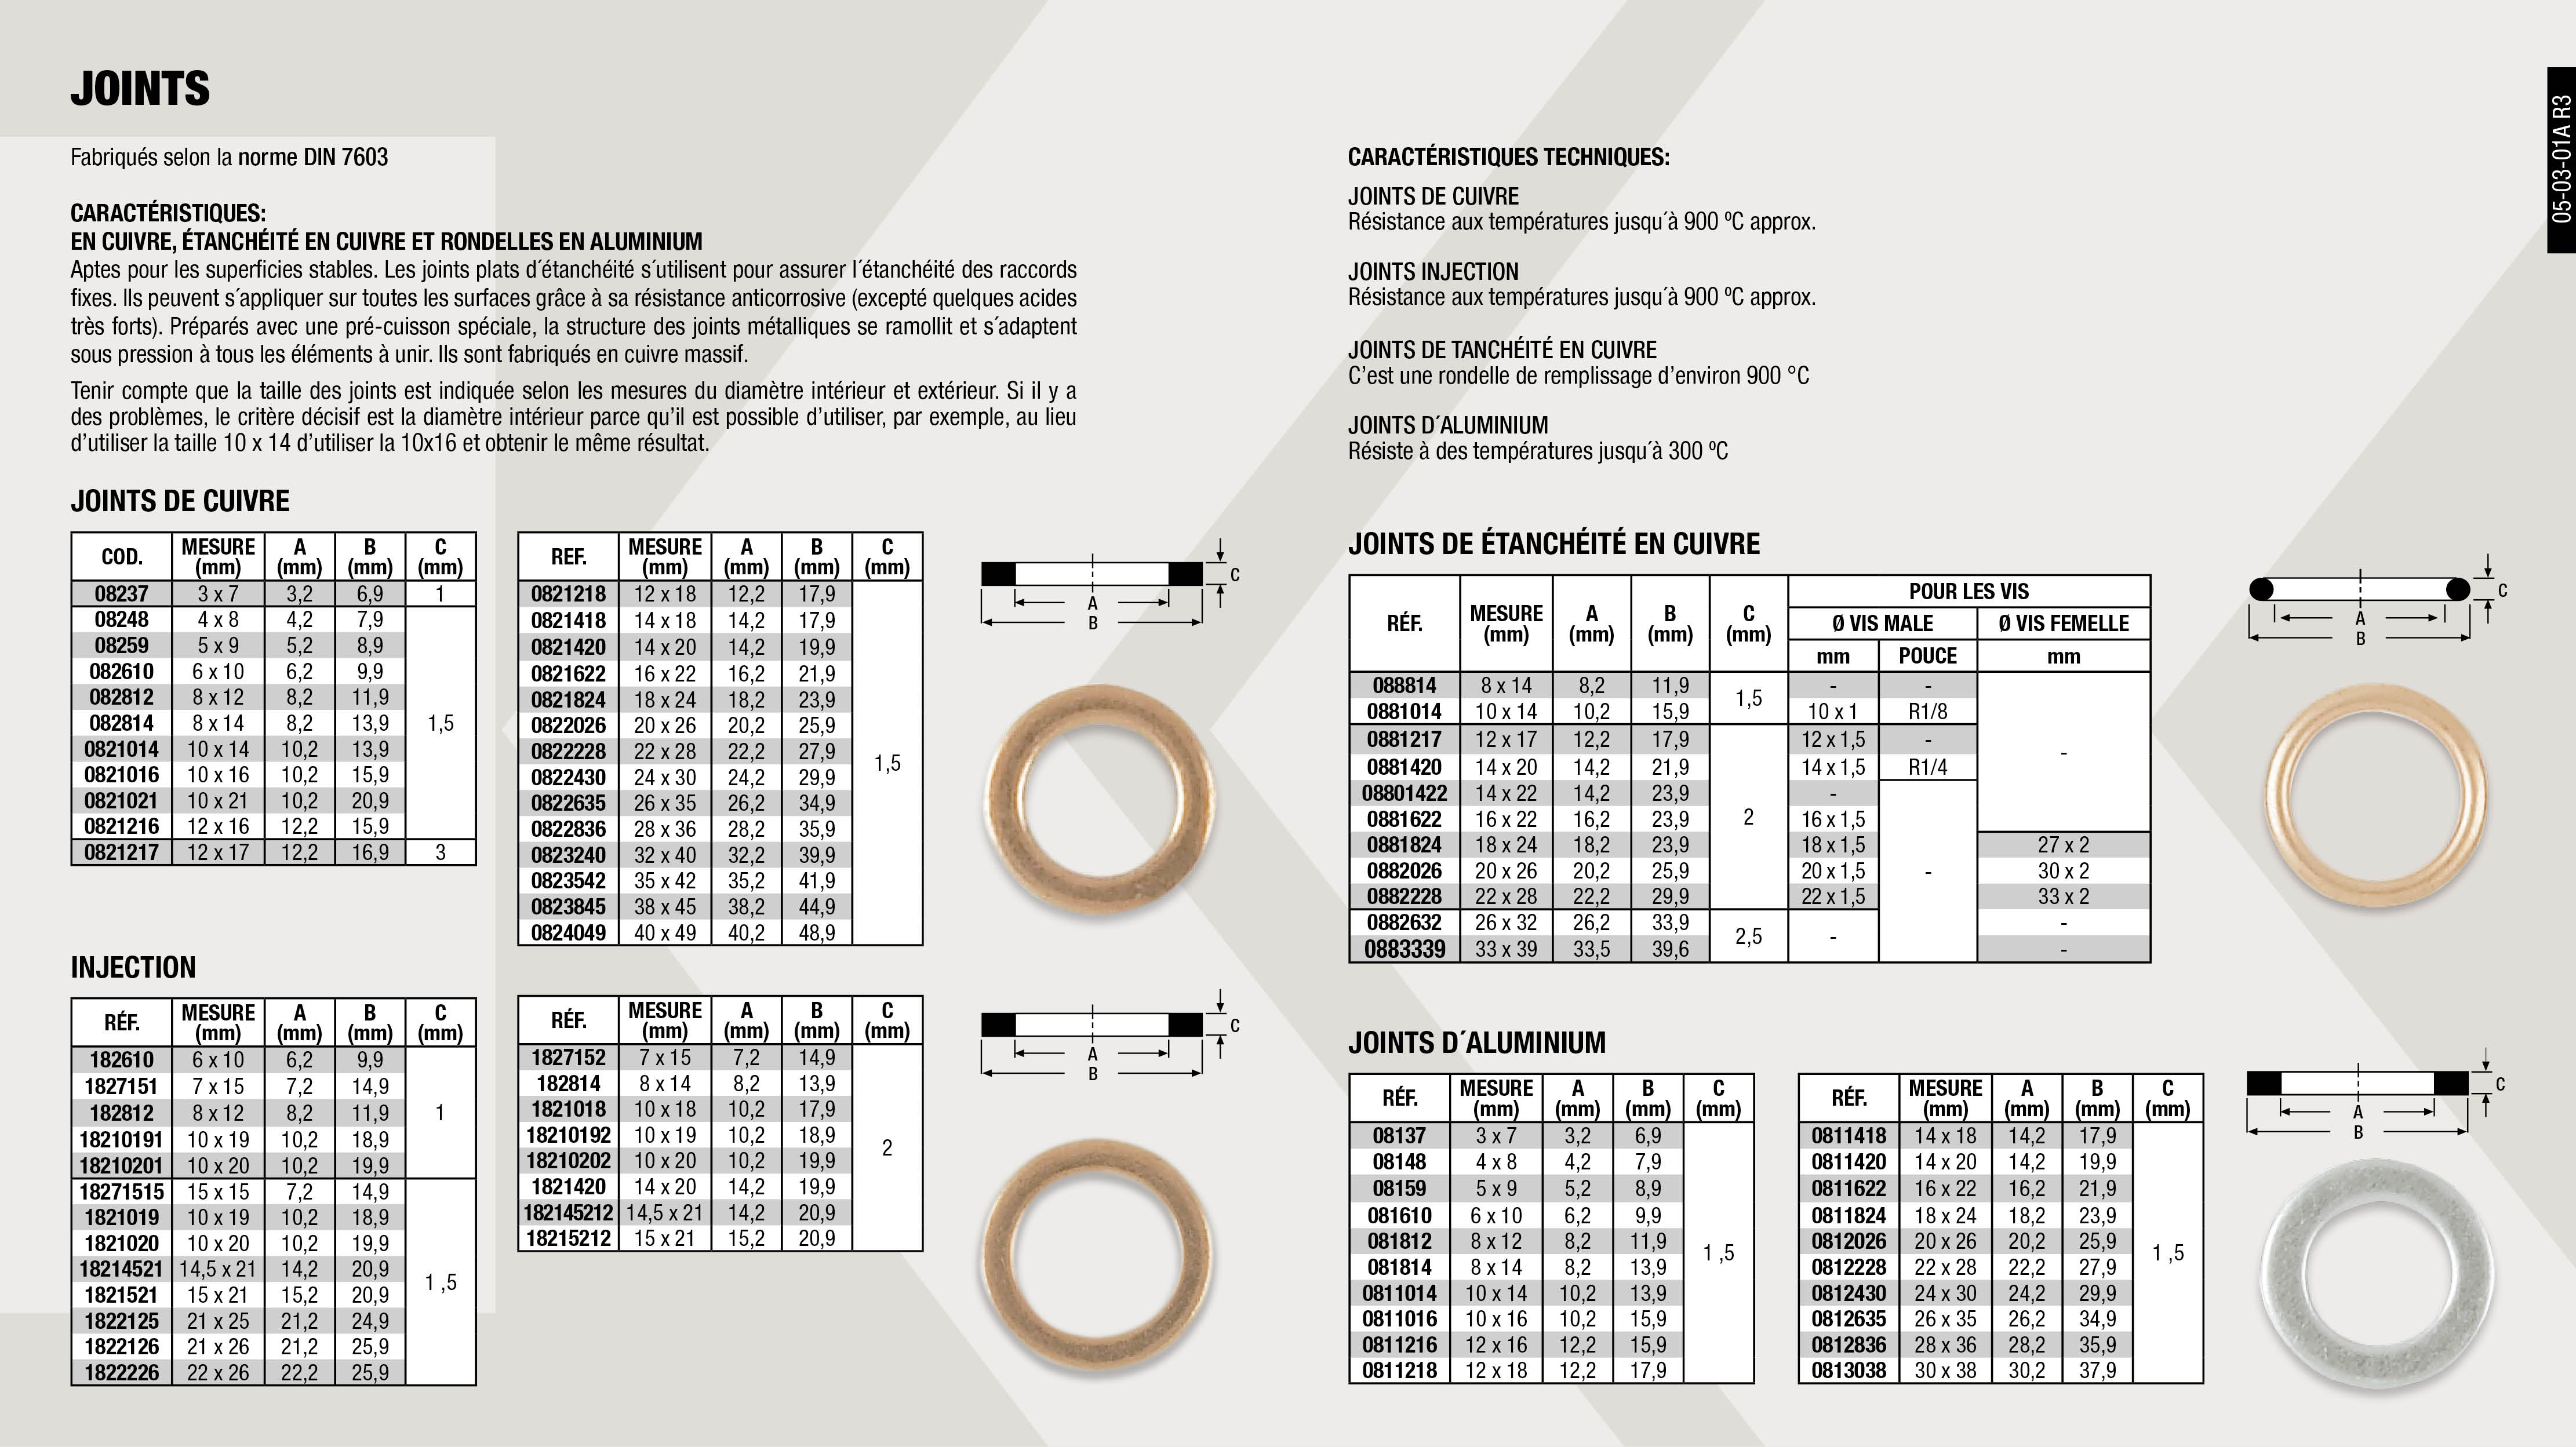 RONDELLE INJECTION 10X19X2                                  ,  									JOINT ALUMINIUM 3X7 MM                                      ,  									JOINT CUIVRE 20X26 MM                                       ,  									JOINT CUIVRE 4X8 MM                                         ,  									RONDELLE INJECTION 10X19X1,5                                ,  									JOINT CUIVRE 8X12 MM                                        ,  									JOINTS DE CUIVRE 26X35                                      ,  									RONDELLE INJECTION 6X10X1                                   ,  									RONDELLE INJECTION 8X12X1                                   ,  									JOINT CUIVRE 12X16 MM                                       ,  									JOINT ETANCH. CUIVRE 33X39MM                                ,  									JOINT ALUMINIUM 12X18 MM                                    ,  									JOINT ALUMINIUM 24X30 MM                                    ,  									JOINT CUIVRE 22X28 MM                                       ,  									RONDELLE CUIVRE 22X28                                       ,  									RONDELLE INJECTION 10X19X1                                  ,  									RONDELLE INJECTION 15X21X1,5                                ,  									RONDELLE INJECTION 8X14X2                                   ,  									JOINT ALUMINIUM 22X28 MM                                    ,  									JOINT ALUMINIUM 6X10 MM                                     ,  									JOINTS DE CUIVRE 40X49MM                                    ,  									RONDELLE INJECTION 22X26X1,5                                ,  									JOINT ALUMINIUM 14X18 MM                                    ,  									JOINT ALUMINIUM 4X8 MM                                      ,  									JOINT ALUMINIUM 8X12 MM                                     ,  									RONDELLE CUIVRE 12X17                                       ,  									RONDELLE CUIVRE NISSAN 12X17X3                              ,  									JOINTS DE CUIVRE 38X45 MM                                   ,  									JOINT CUIVRE 10X21X1,5MM                                    ,  									JOINT ALUMINIUM 10X16 MM                                    ,  									JOINT ALUMINIUM 16X22 MM                                    ,  									JOINT CUIVRE 14X18 MM                                       ,  									RONDELLE INJECTION 14X20X2                                  ,  									RONDELLE INJECTION 14,5X21X1,5                              ,  									RONDELLE INJECTION 21X26X1,5                                ,  									JOINT ALUMINIUM 5X9 MM                                      ,  									JOINT CUIVRE 5X9 MM                                         ,  									RONDELLE CUIVRE 16X22                                       ,  									JOINTS DE CUIVRE 35X42 MM                                   ,  									RONDELLE INJECTION 10X18X2                                  ,  									RONDELLE INJECTION 14,5X21X2                                ,  									JOINT CUIVRE 12X18 MM                                       ,  									JOINT CUIVRE 14X20 MM                                       ,  									JOINT CUIVRE 6X10 MM                                        ,  									RONDELLE CUIVRE 18X24                                       ,  									JOINTS DE CUIVRE 24X30                                      ,  									JOINT INJECTION 7X15X1                                      ,  									RONDELLE INJECTION 21X25X1,5                                ,  									JOINTS DE CUIVRE 28X36                                      ,  									JOINT ALUMINIUM 12X16 MM                                    ,  									JOINT ALUMINIUM 14X20 MM                                    ,  									JOINT ALUMINIUM 26X35 MM                                    ,  									JOINT CUIVRE 16X22 MM                                       ,  									RONDELLE CUIVRE 14X22                                       ,  									RONDELLE CUIVRE 8X14                                        ,  									JOINT ALUMINIUM 30X38 MM                                    ,  									RONDELLE CUIVRE 14X20                                       ,  									JOINTS DE CUIVRE 32X40                                      ,  									RONDELLE INJECTION 10X20X1,5                                ,  									RONDELLE INJECTION 15X21X2                                  ,  									JOINT ALUMINIUM 28X36 MM                                    ,  									JOINT CUIVRE 18X24 MM                                       ,  									JOINT CUIVRE 3X7 MM                                         ,  									JOINT CUIVRE 8X14 MM                                        ,  									RONDELLE INJECTION 10X20X1                                  ,  									JOINT ALUMINIUM 18X24 MM                                    ,  									JOINT ALUMINIUM 8X14 MM                                     ,  									JOINT CUIVRE 10X14 MM                                       ,  									JOINT INJECTION 7X15X2                                      ,  									RONDELLE INJECTION 10X20X2                                  ,  									JOINT ALUMINIUM 10X14 MM                                    ,  									JOINT ALUMINIUM 20X26 MM                                    ,  									JOINT CUIVRE 10X16 MM                                       ,  									RONDELLE CUIVRE 10X14                                       ,  									RONDELLE CUIVRE 20X26                                       ,  									RONDELLE CUIVRE 26X32                                       ,  									JOINT INJECTION 7X15X1,5                                    ,